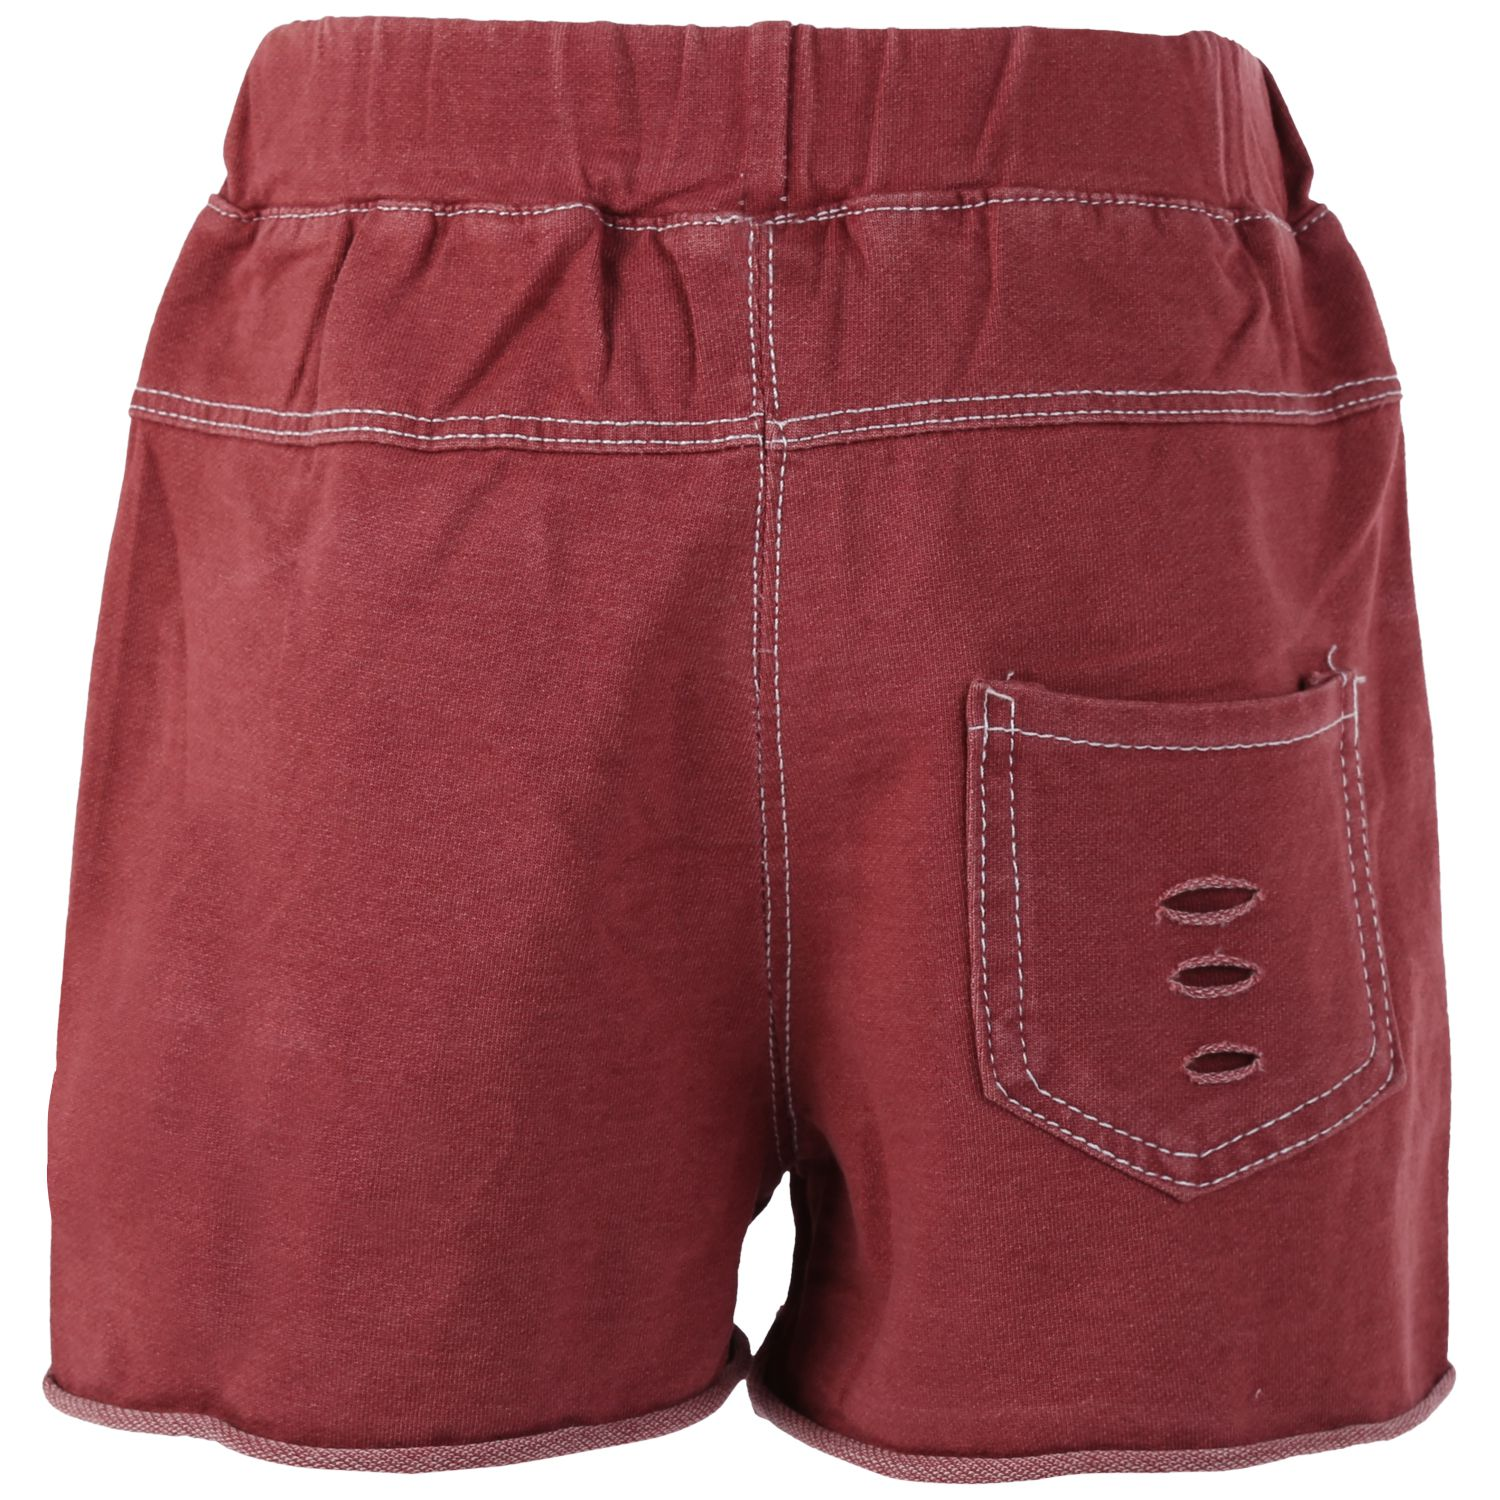 Blisara Girls Jeans Style Pattern Maroon Short Pant (Size Suitable for 5 to 6 years)